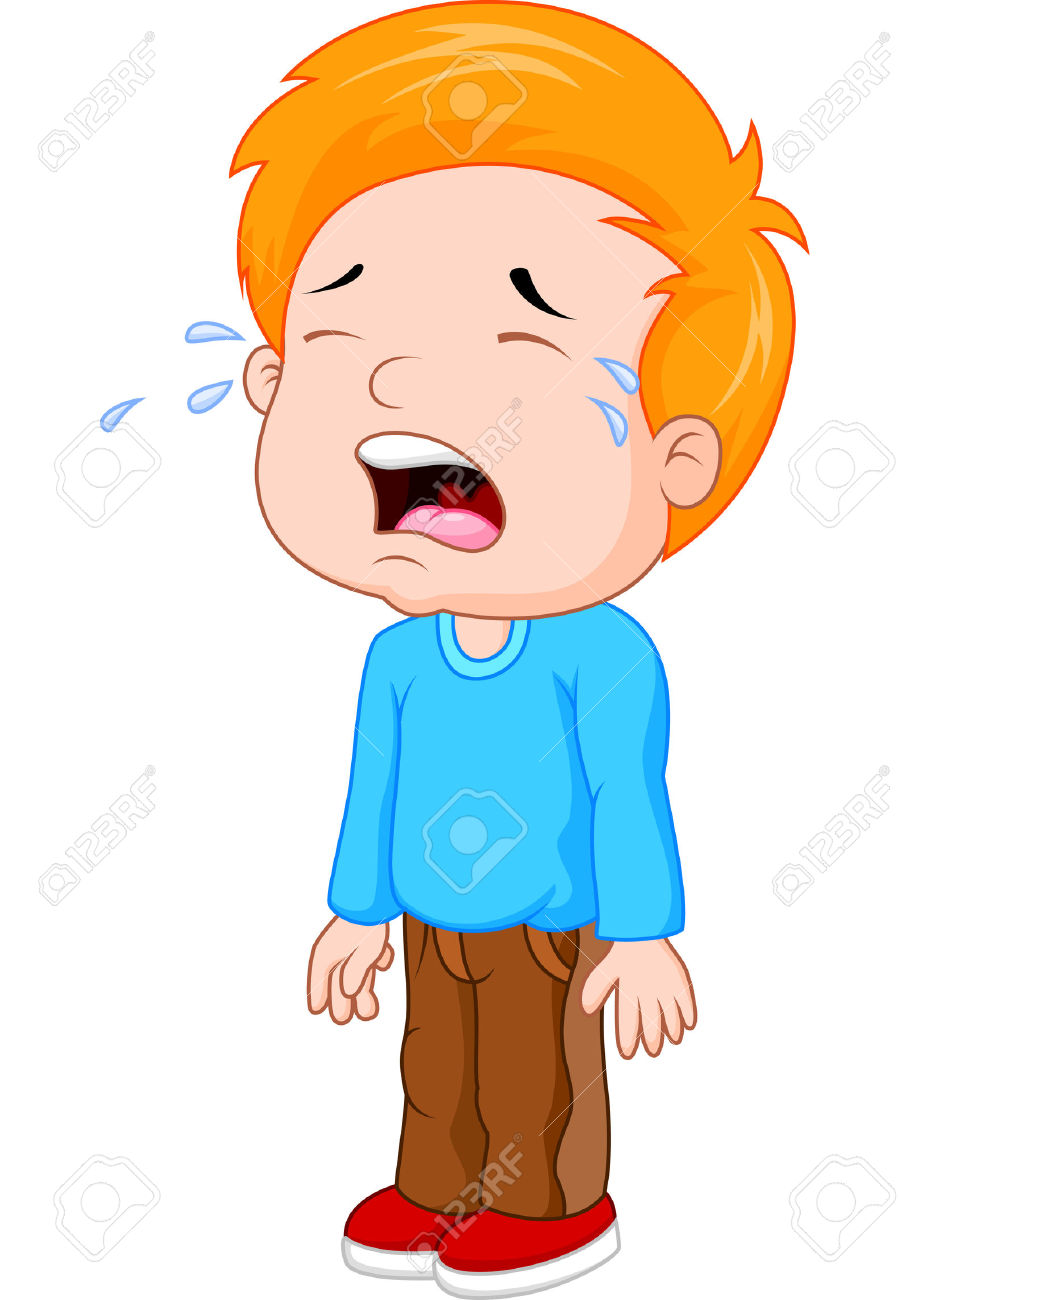 Boy Crying Clipart.